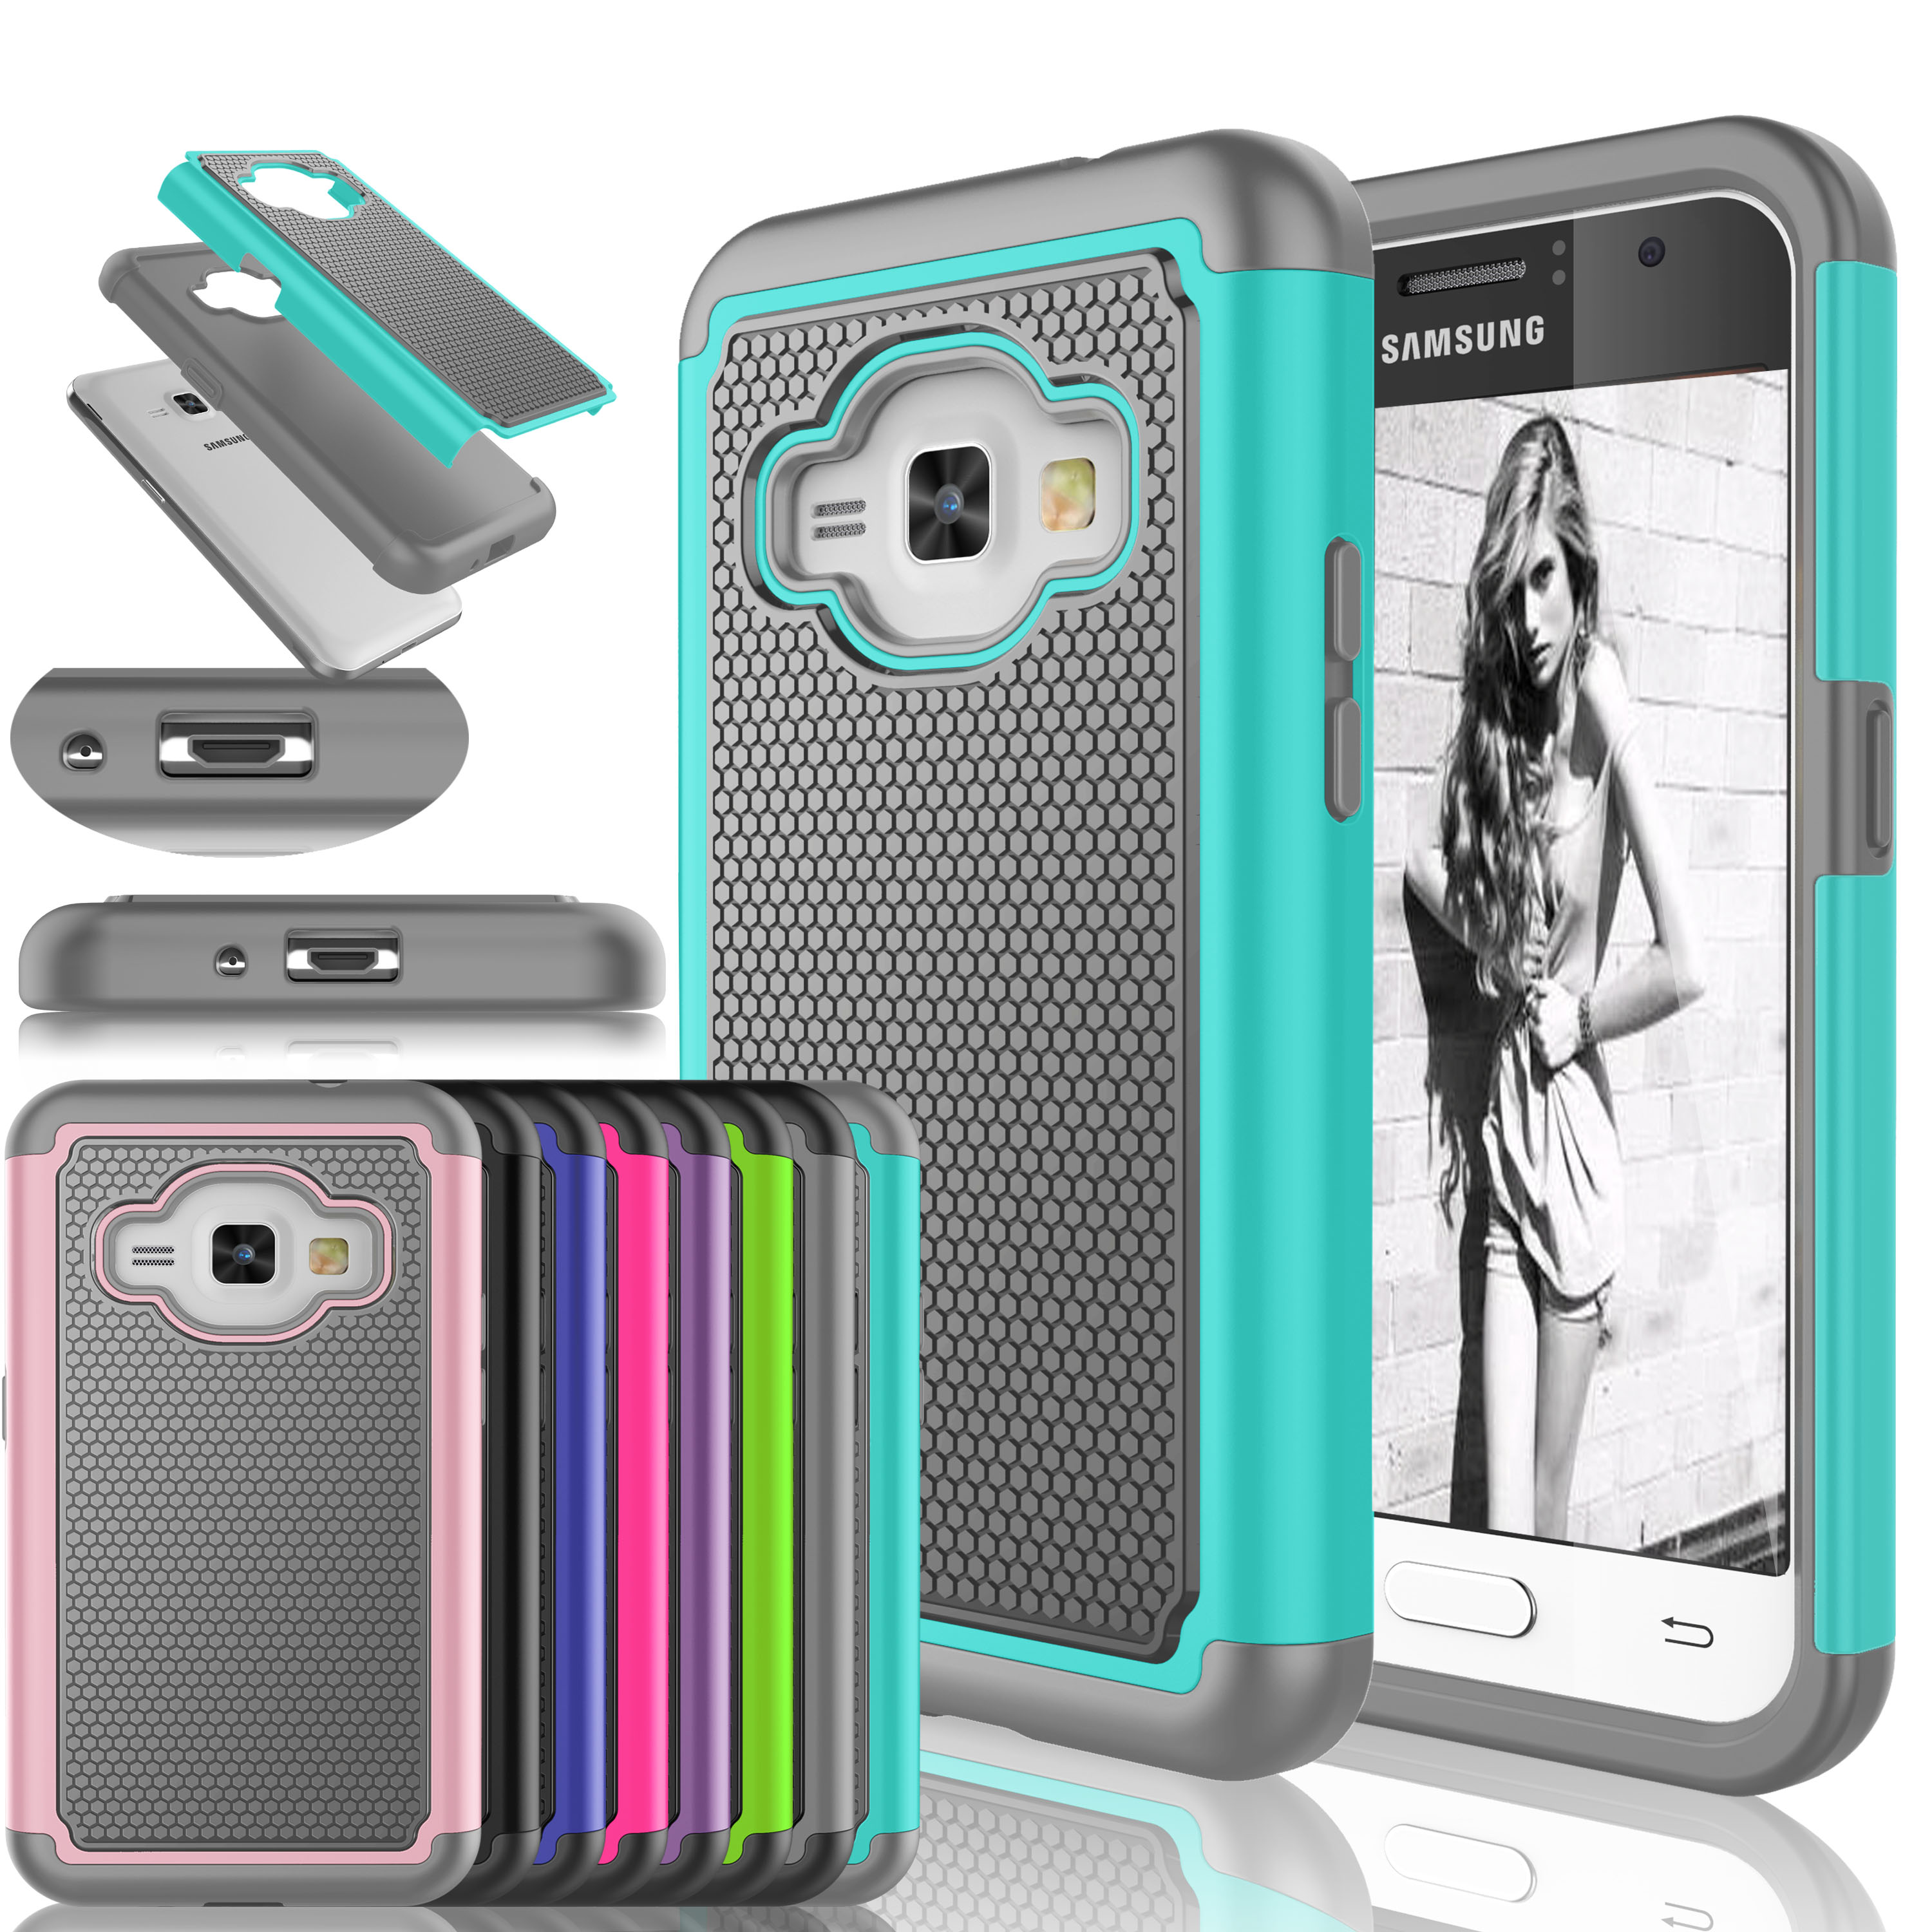 Galaxy J1 2016 Case,Galaxy luna Case, Galaxy Express 3 Case,[Turquoise] Shock Absorbing Rubber Plastic Defender Case Cover For Samsung Galaxy J1/J120/Amp 2/Express 3 /luna